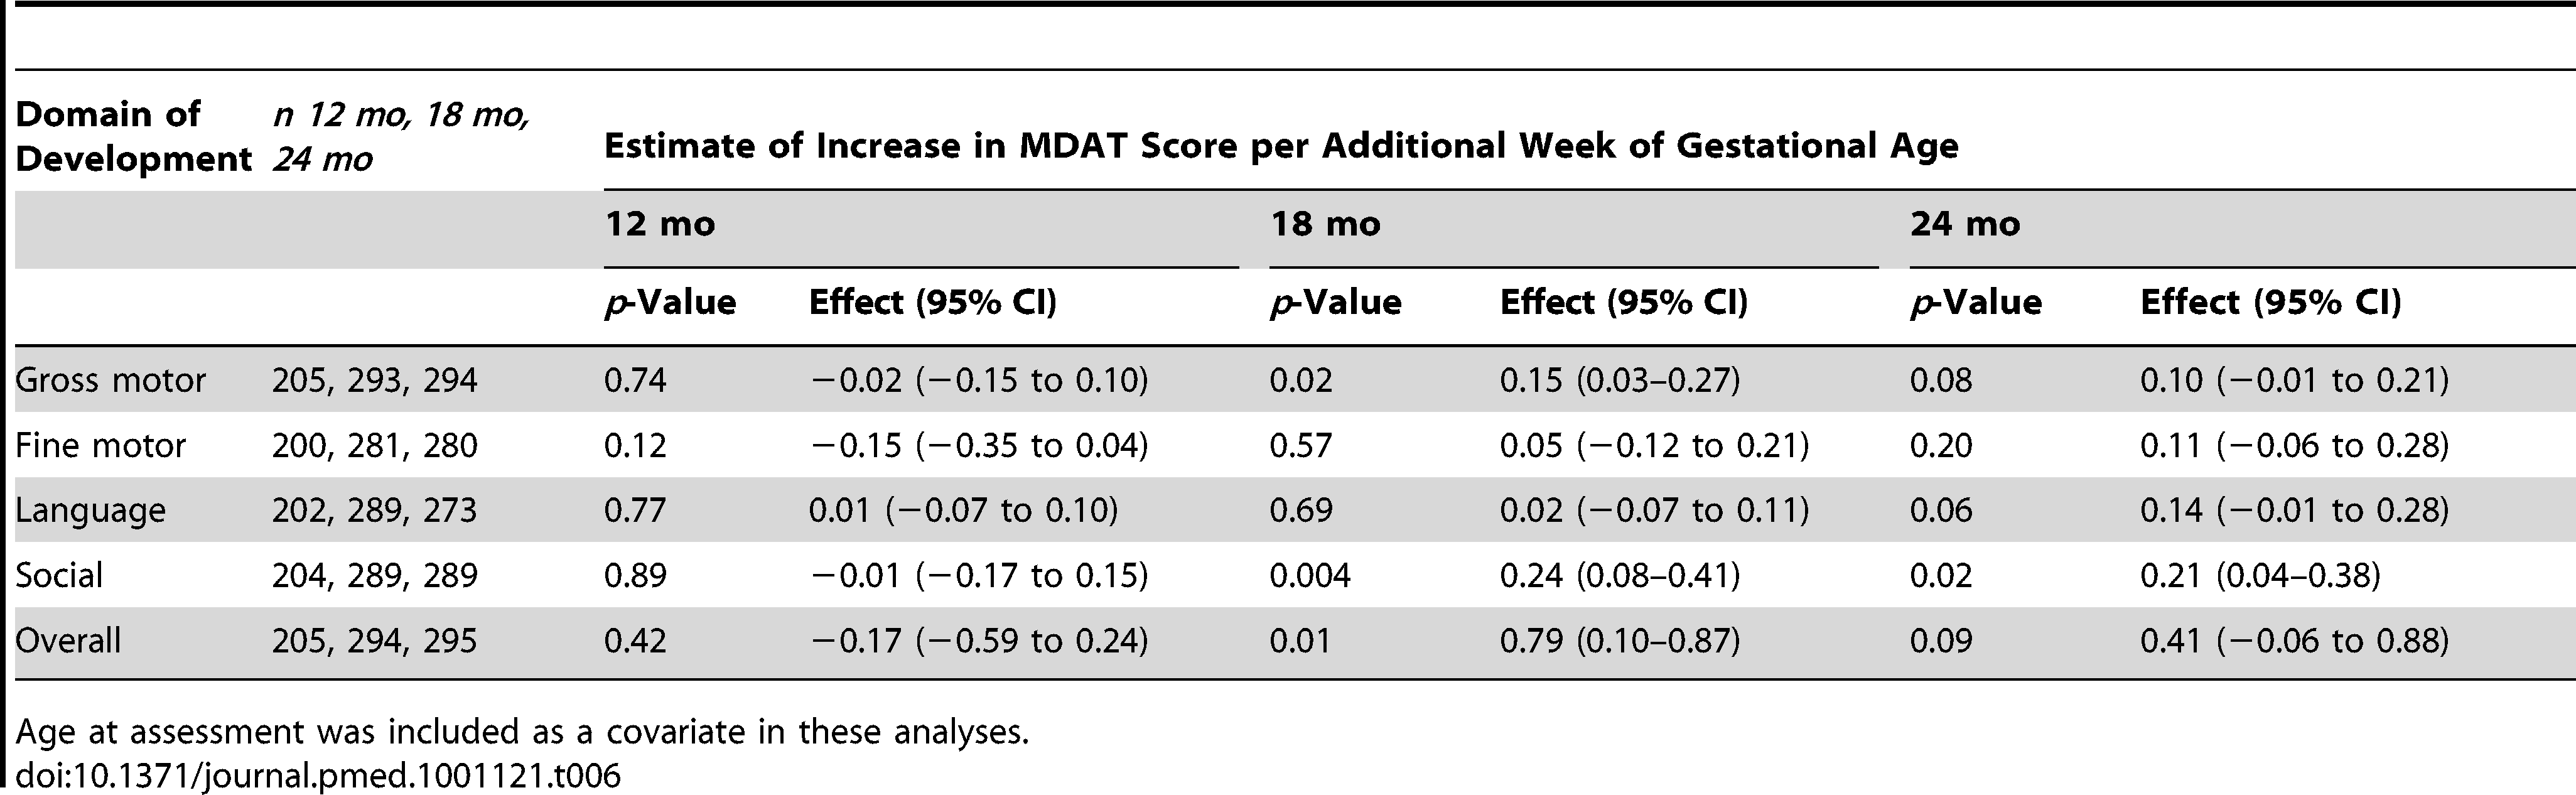 Summary of linear regression estimates of effect of gestational age at delivery and assessment age for MDAT scores.